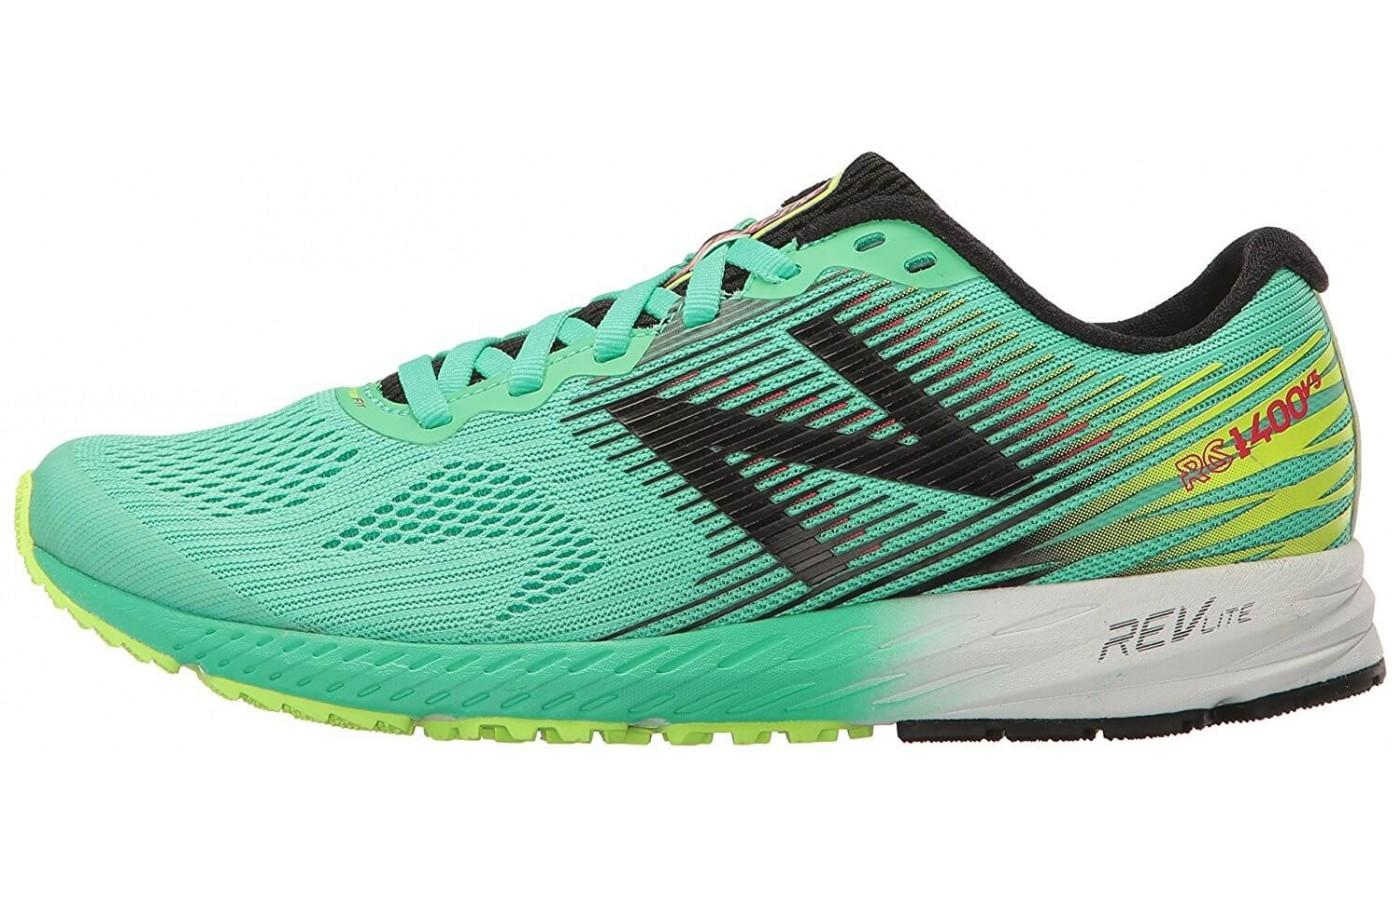 The New Balance 1400v5 has cushioning that is lightweight and supportive